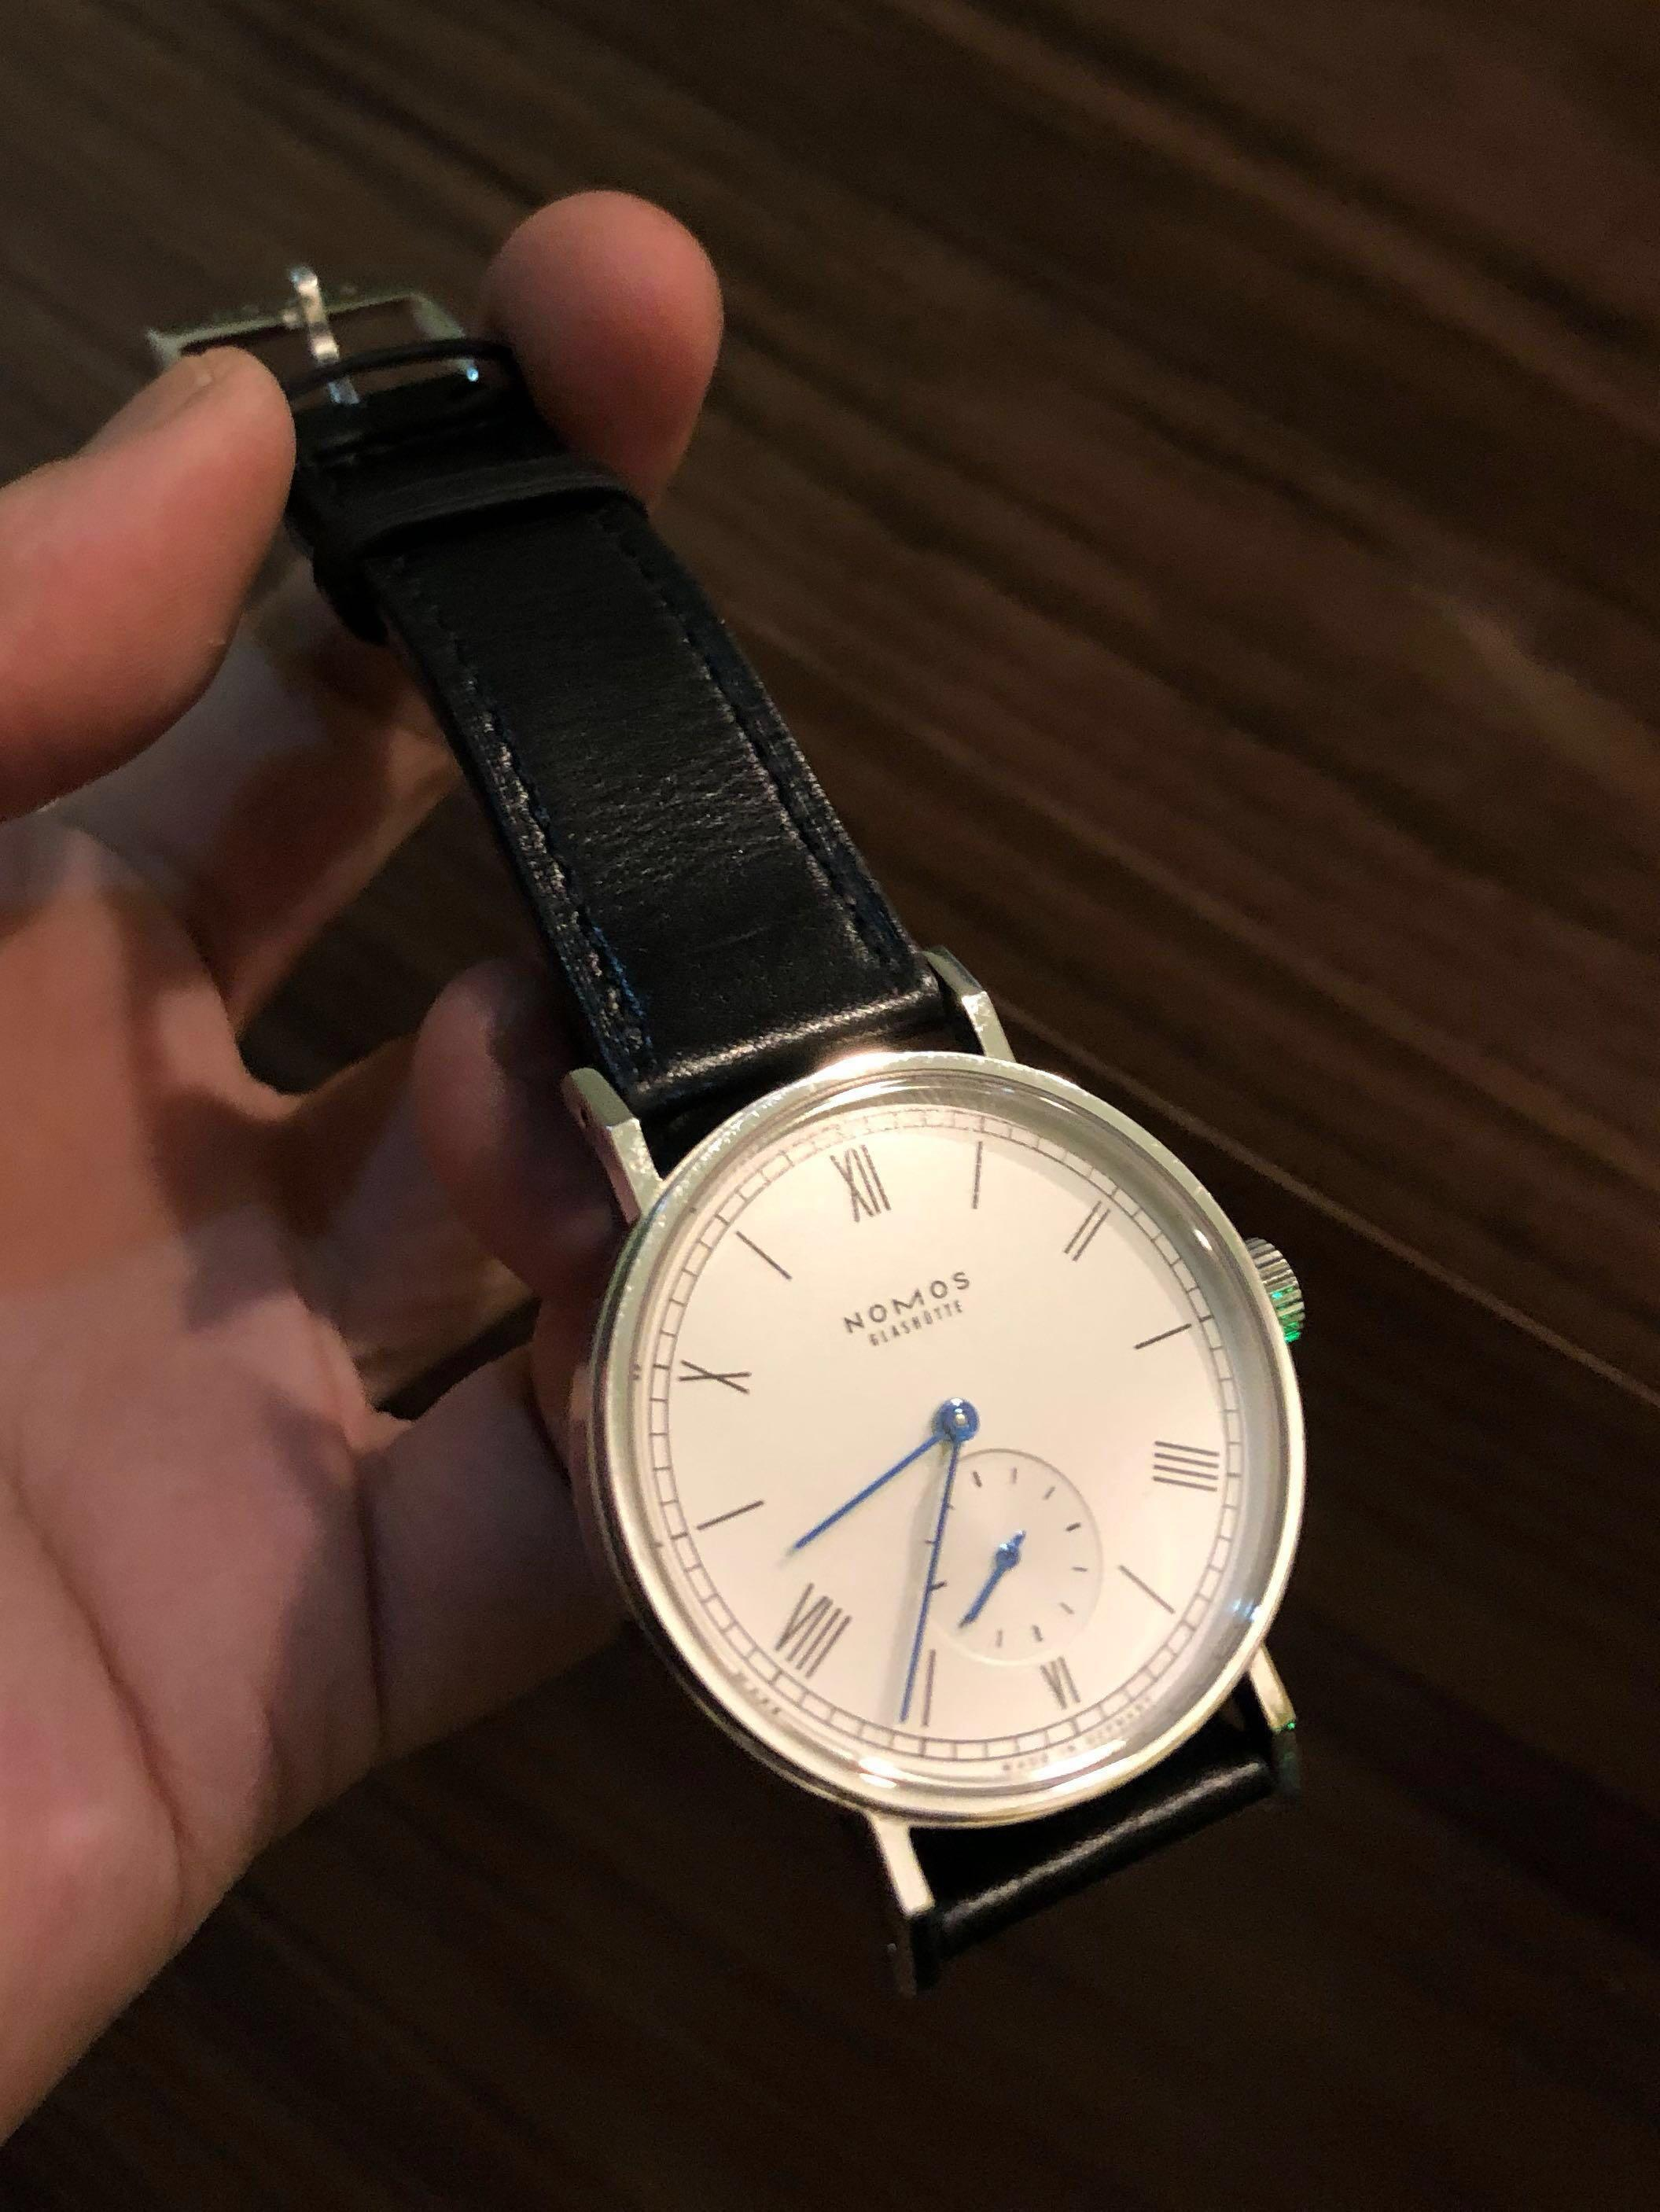 Nomos glashutte Germany handmade watch not oris ball fossil seiko tissot casio